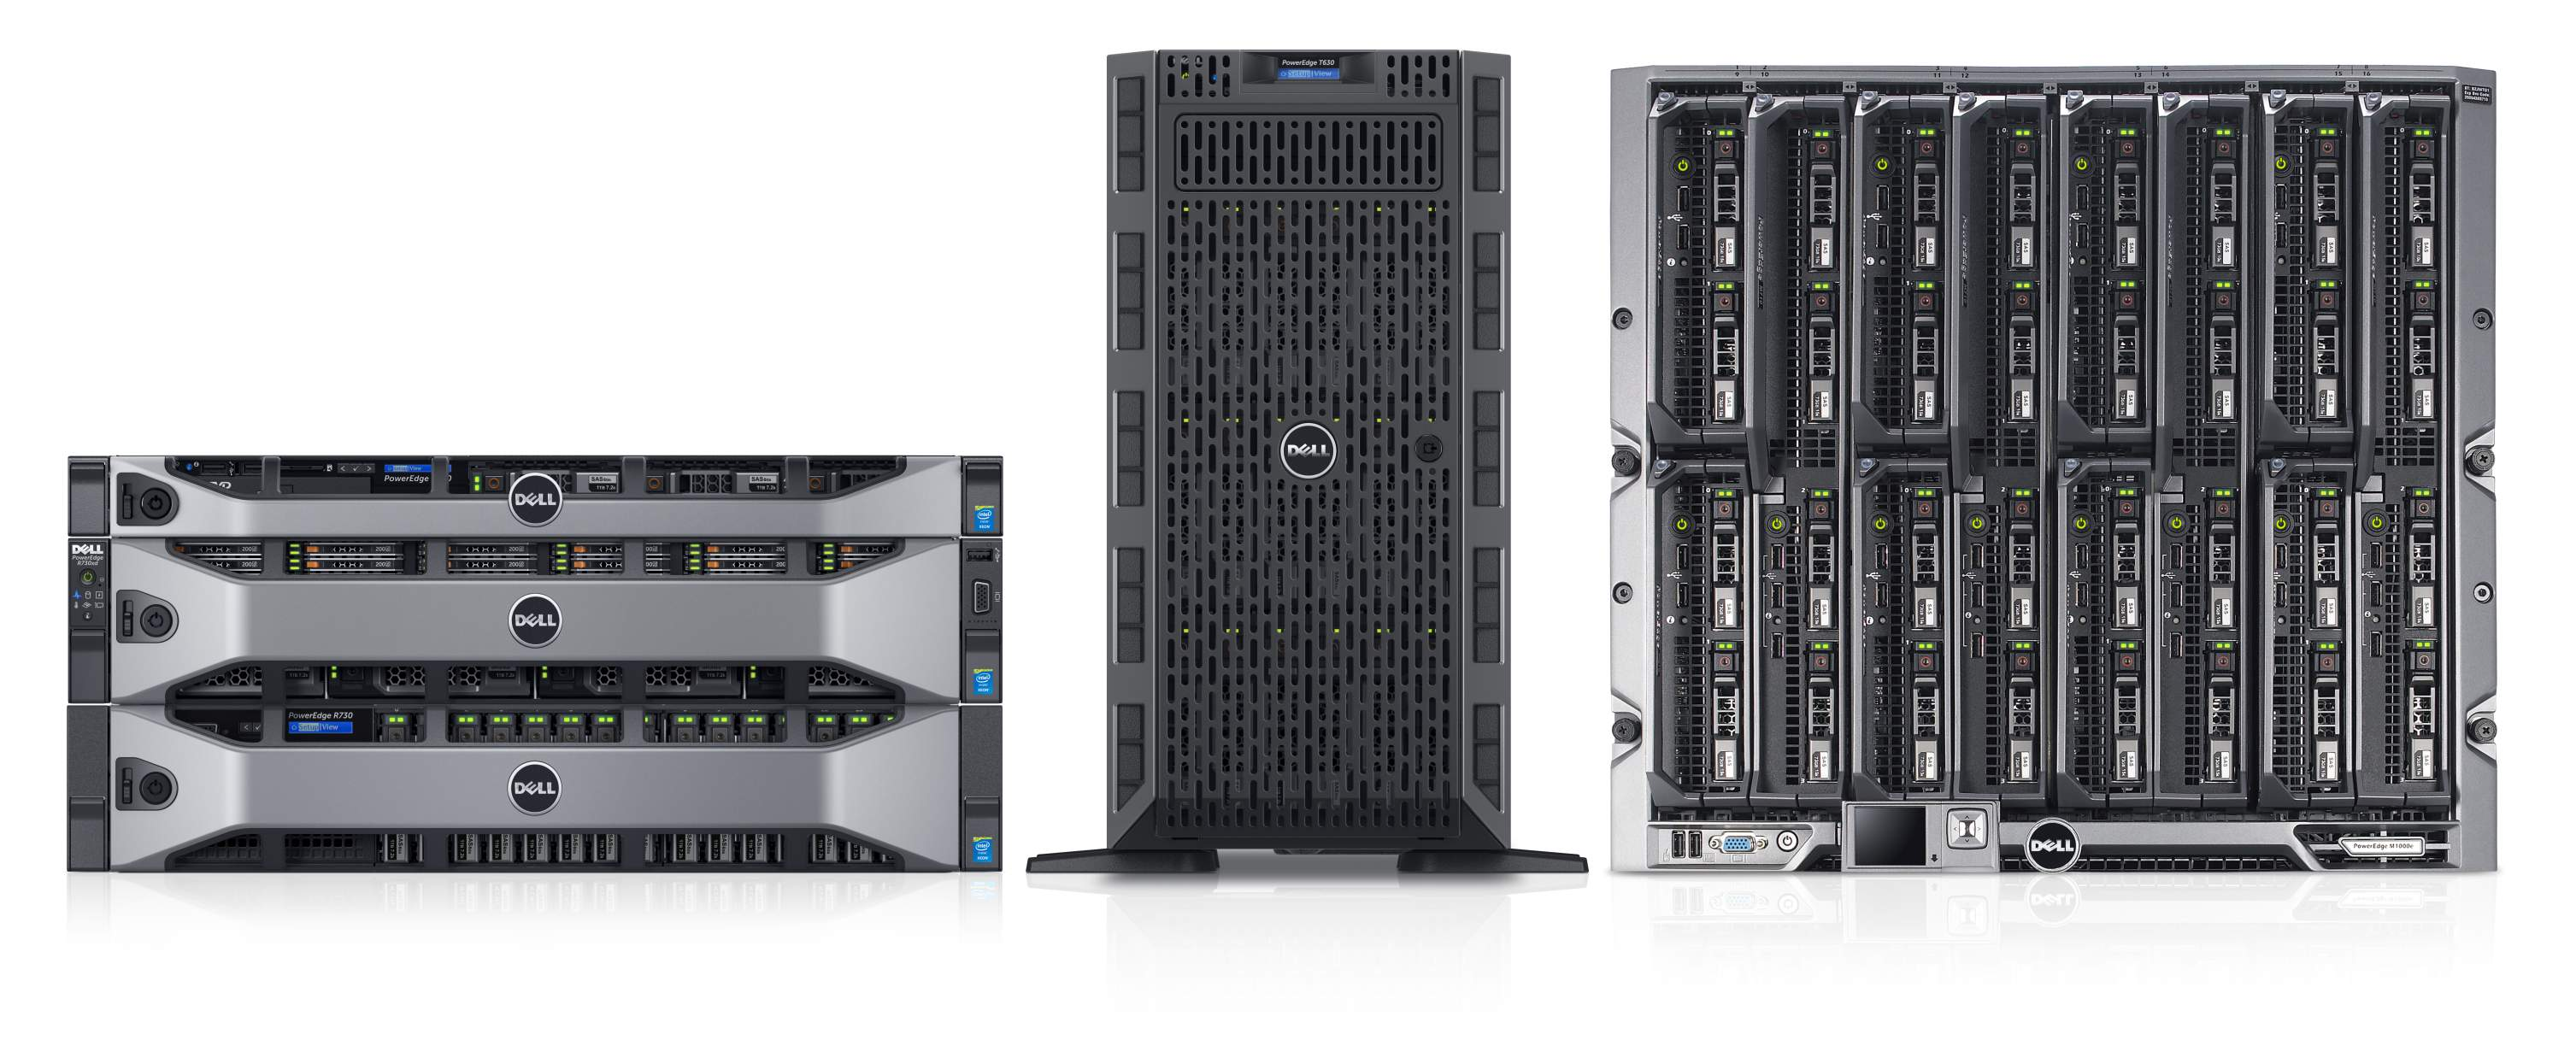 Dell PowerEdge 13G server family, featuring stacked Dell PowerEdge R630 (2.5-inch drives), R730xd (1.8-inch drives), and R730 (2.5-inch drives) rack servers with bezels, next to a Dell PowerEdge T630 (3.5-inch hard drives) tower server and a Dell PowerEdge M1000e blade server enclosure, populated with PowerEdge M710 and M610 blade servers.